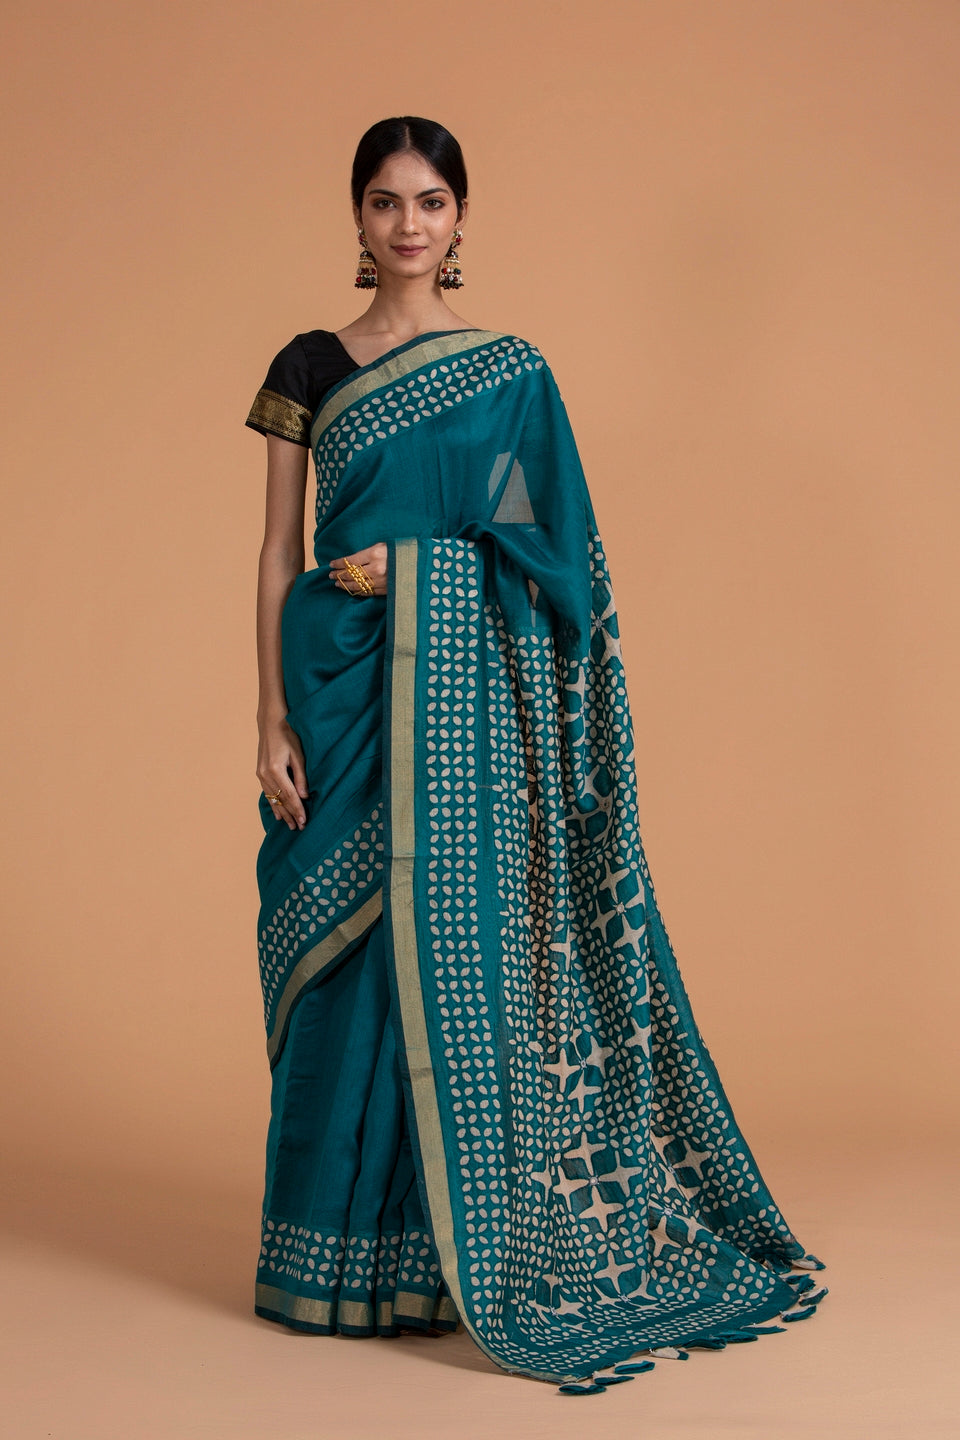 Chakor Motif Chanderi Applique Saree, Pine Green